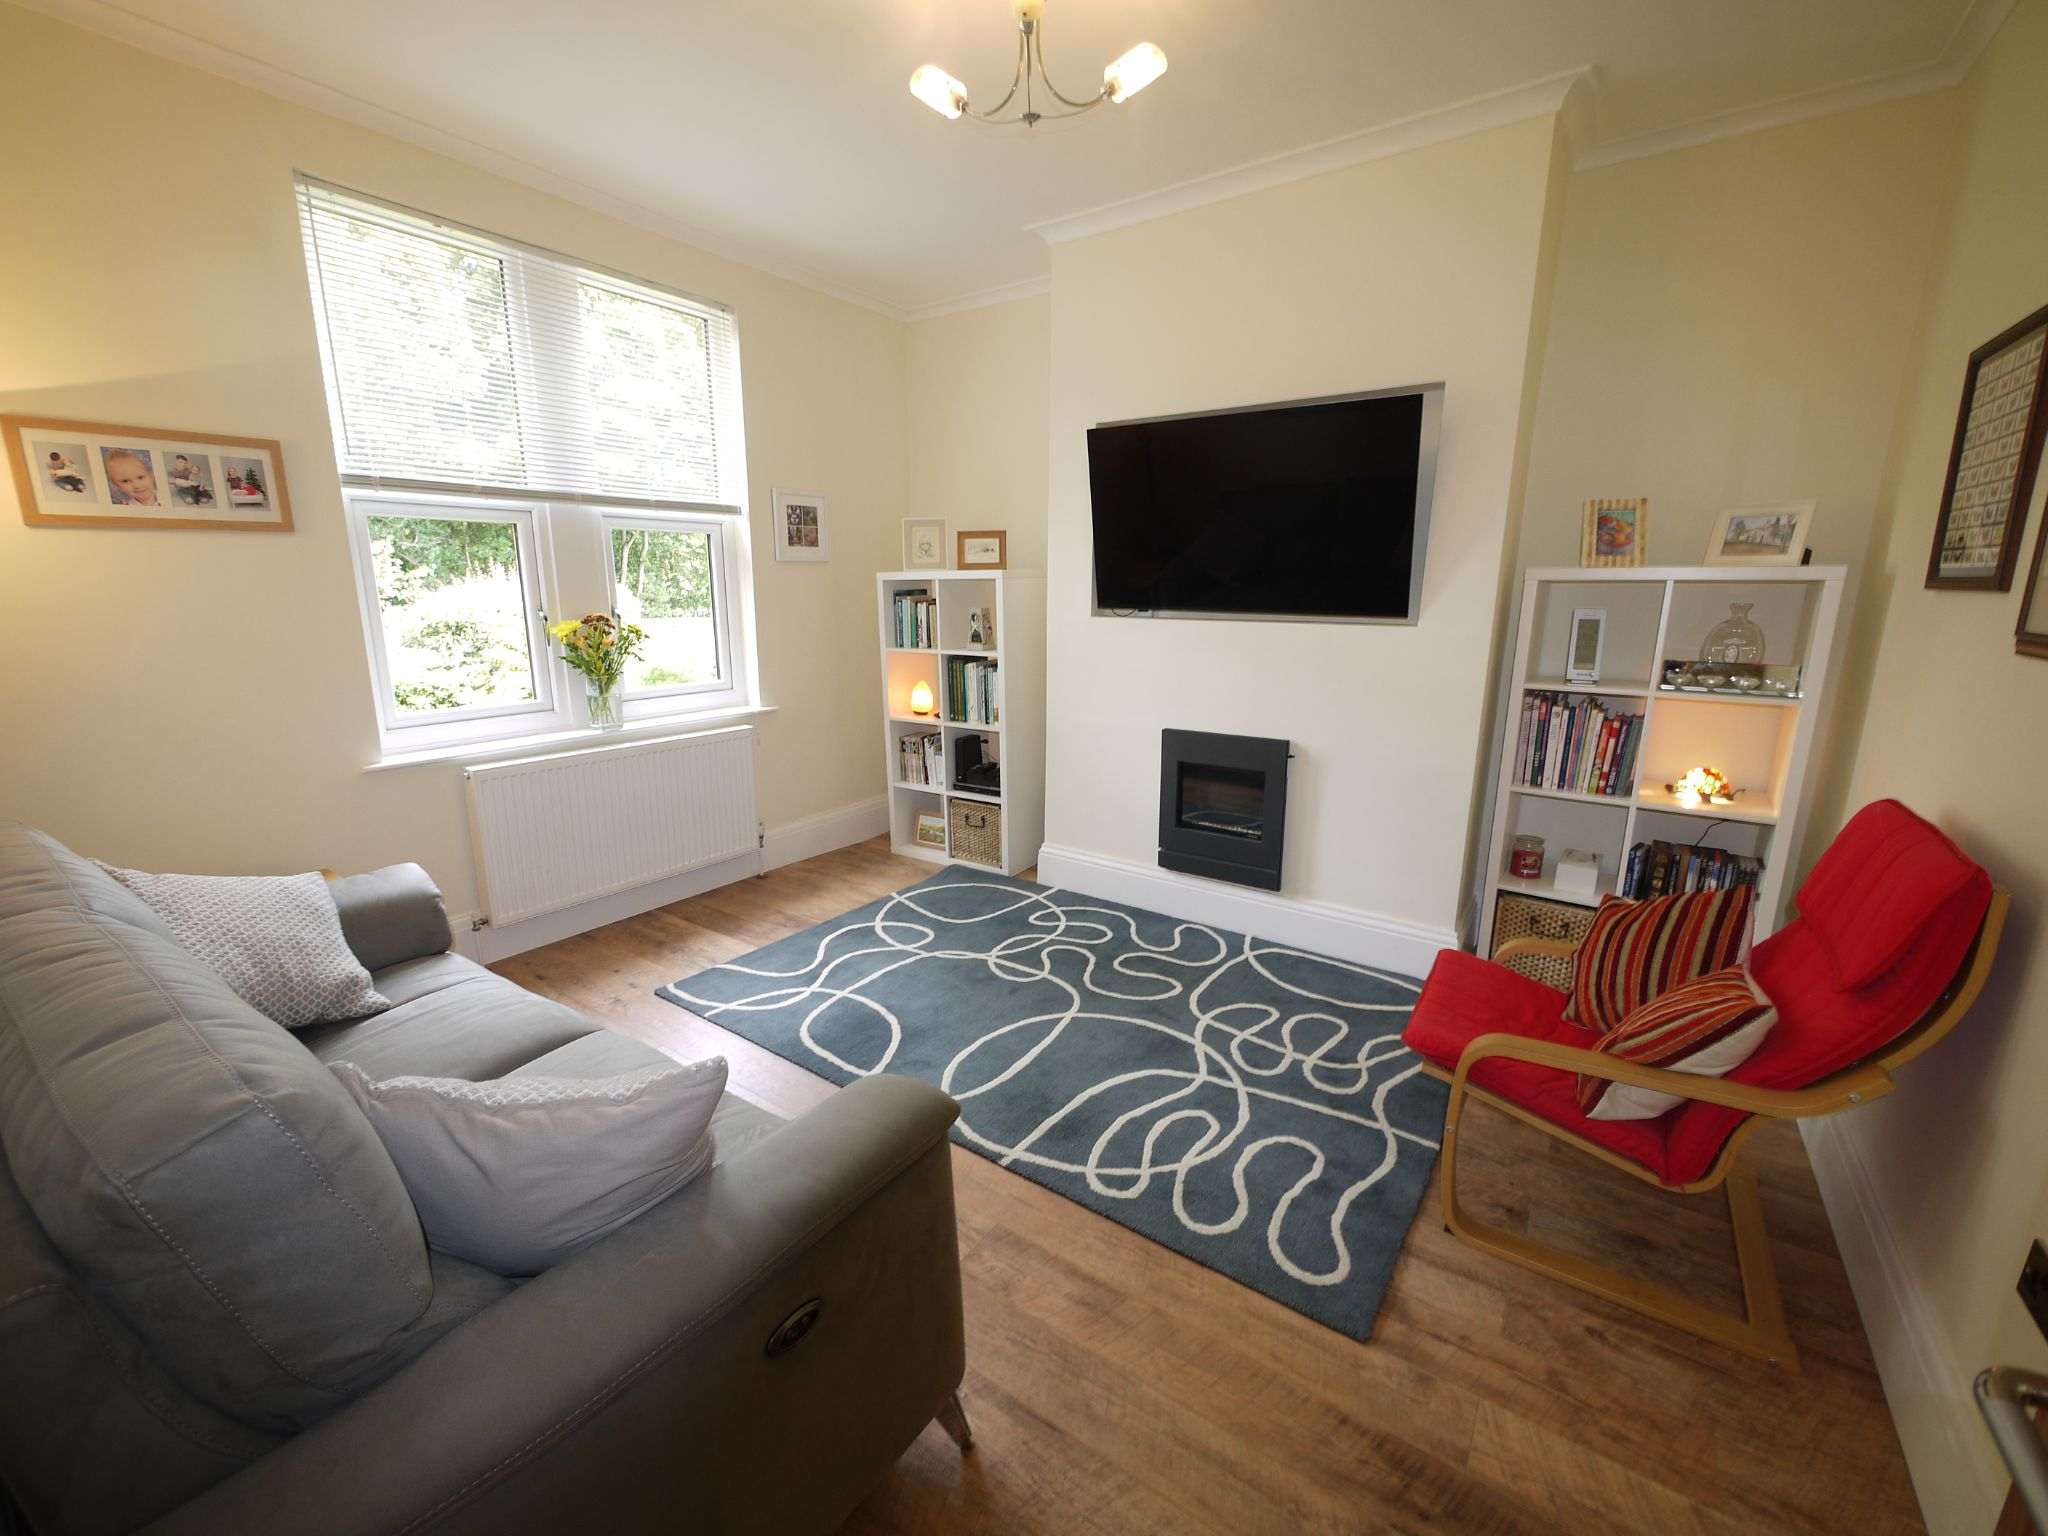 4 bedroom detached house SSTC in Halifax - Photograph 3.